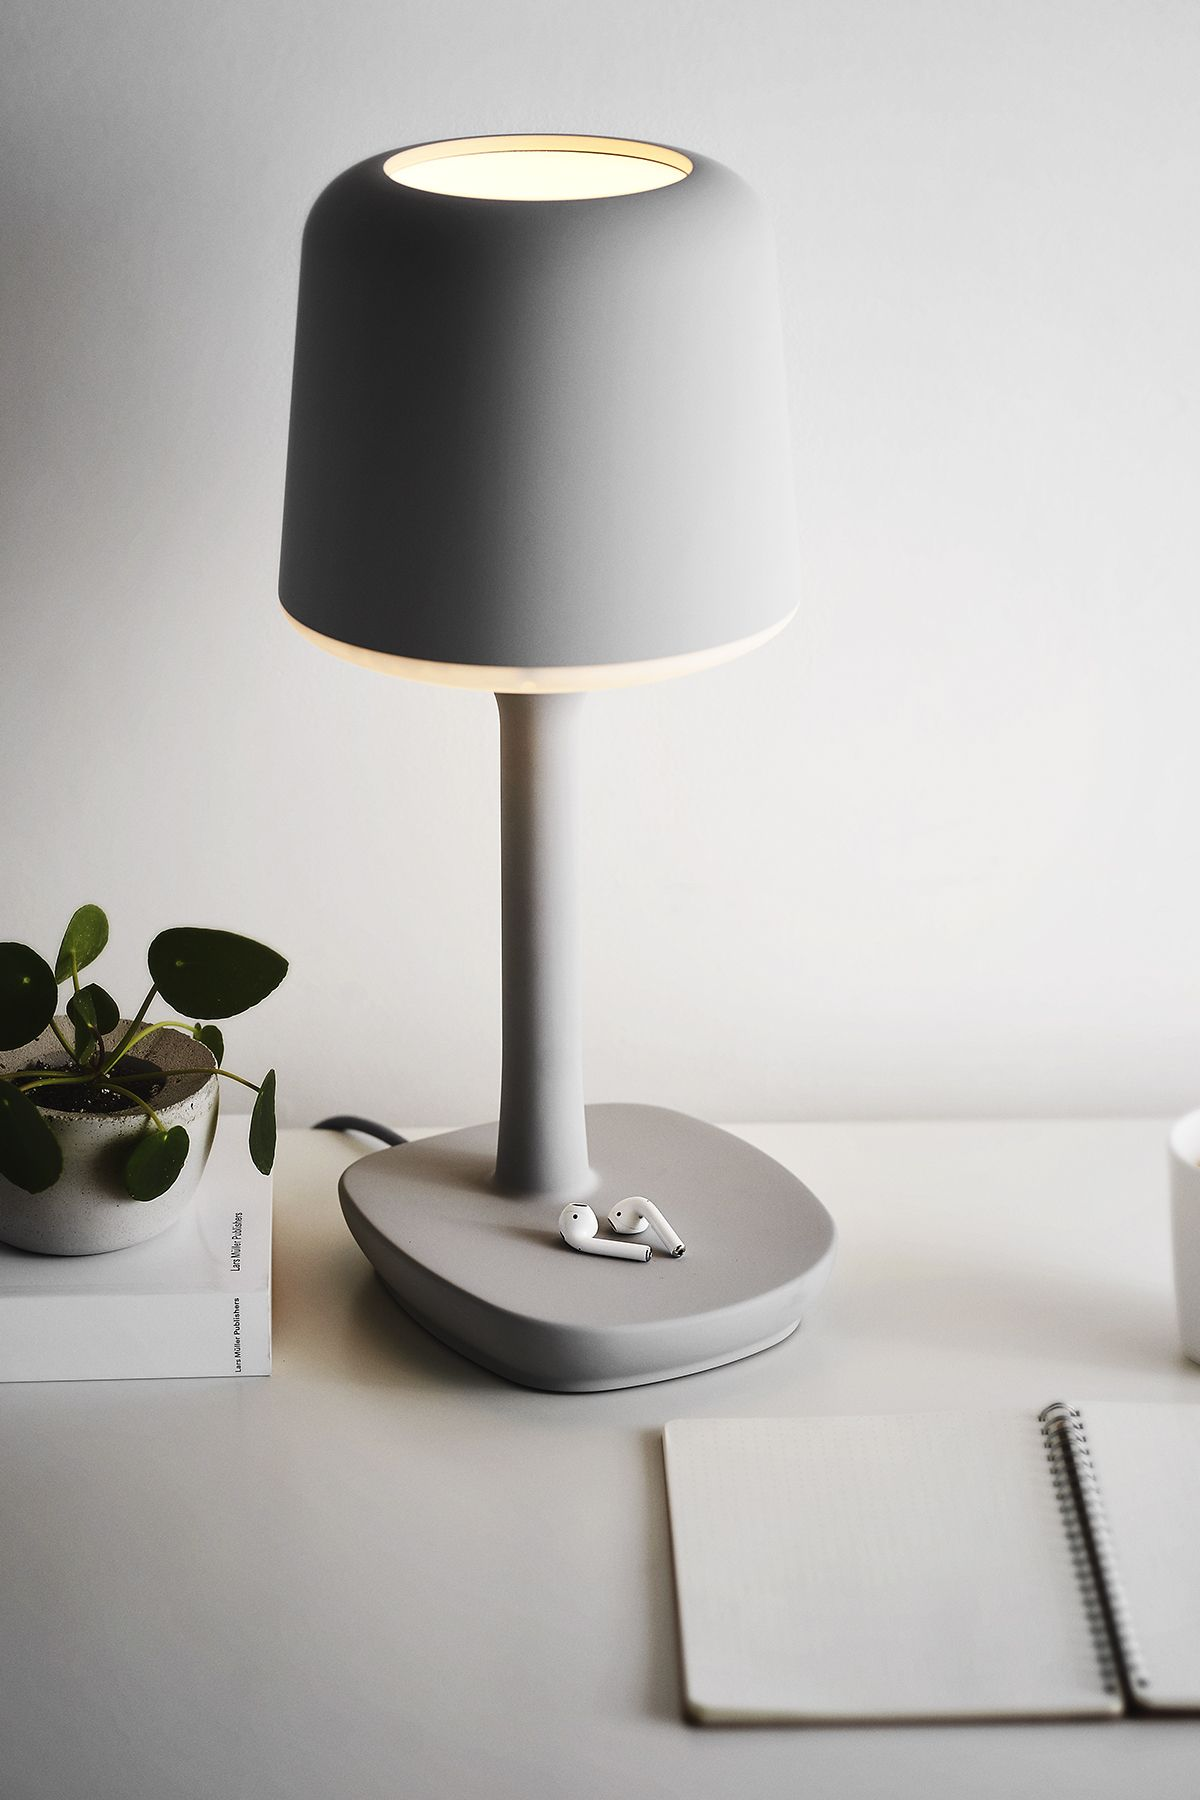 Container Table Light by Alex Chow. A sleek hallway light